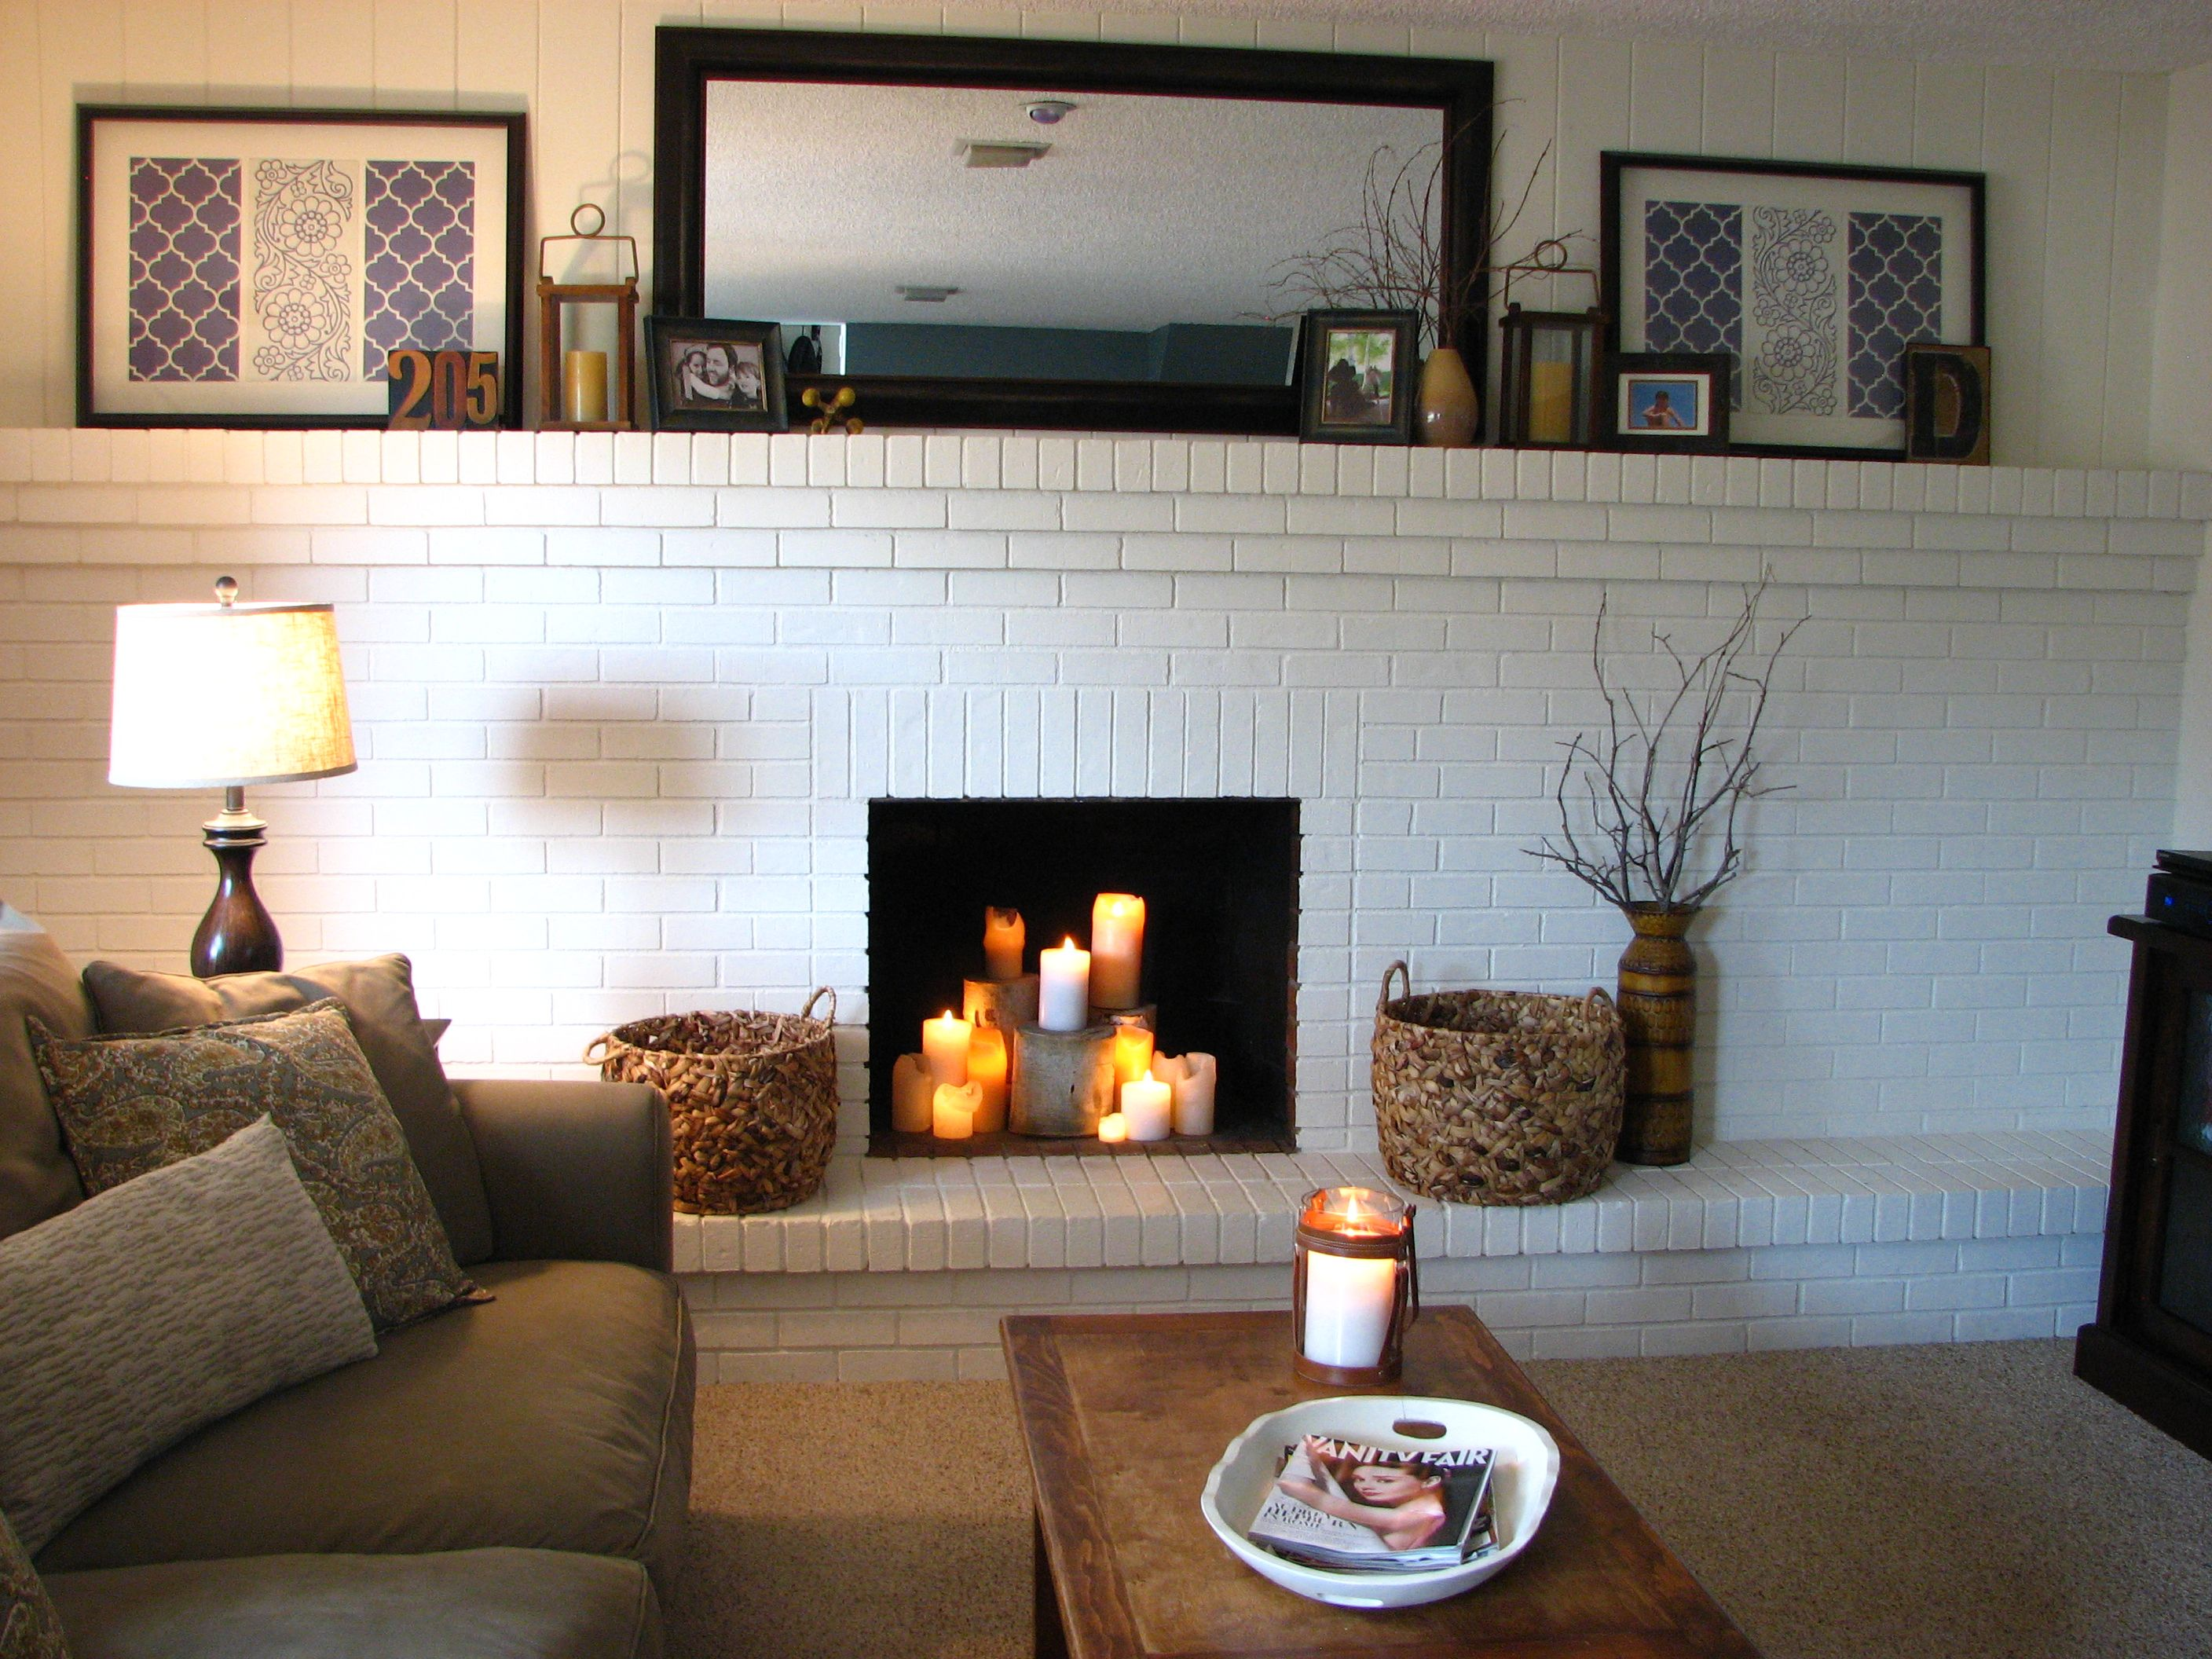 Fireplace Walls Ideas Interesting Best 25 Brick Fireplace Wall Ideas On Pinterest  Brick Fireplace Decorating Design